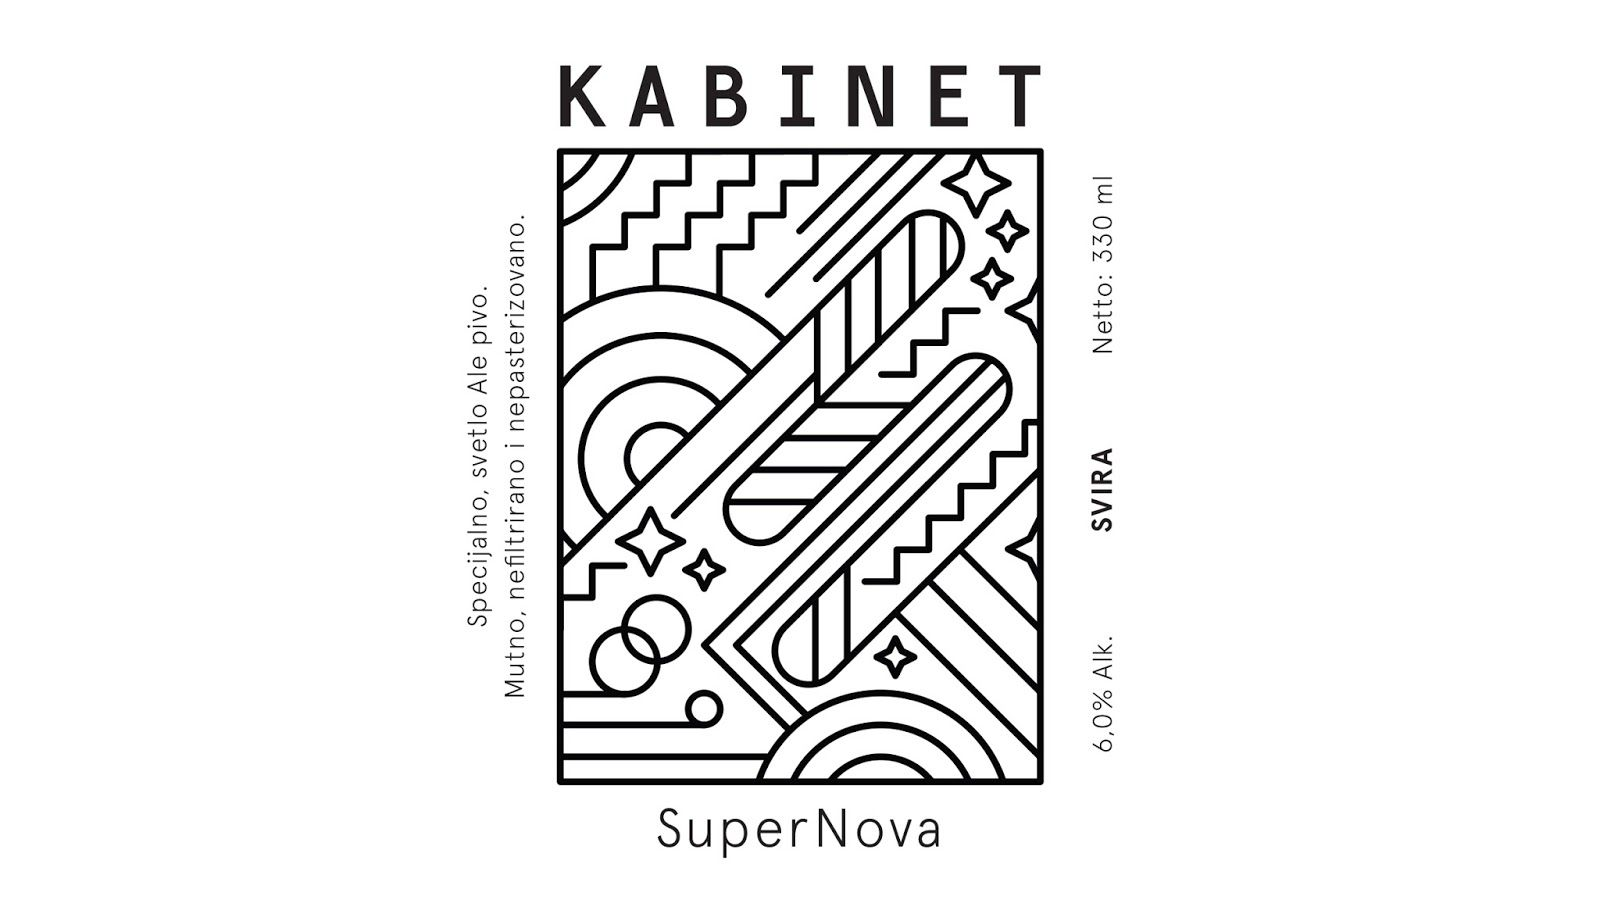 Kabinet Brewery - SuperNova (Concept) on Packaging of the World - Creative Package Design Gallery